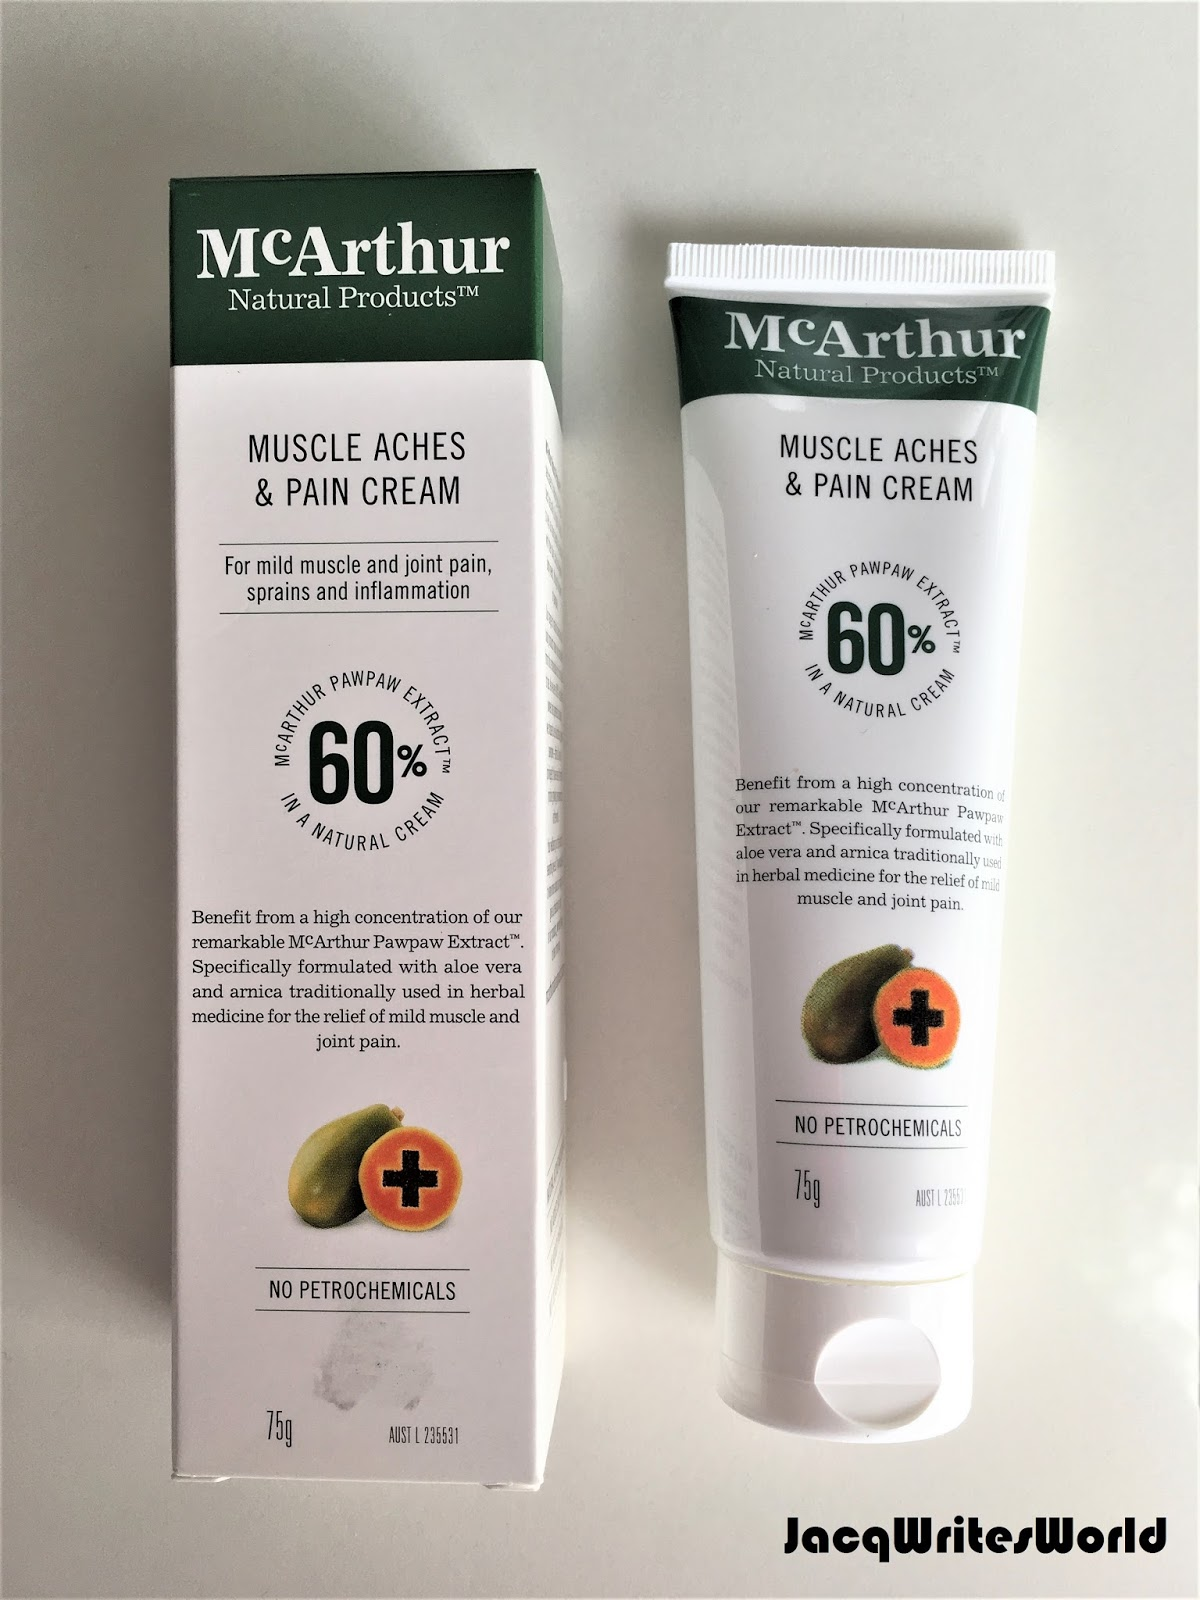 Get Healed by the Pawpaw with the McArthur Natural Products